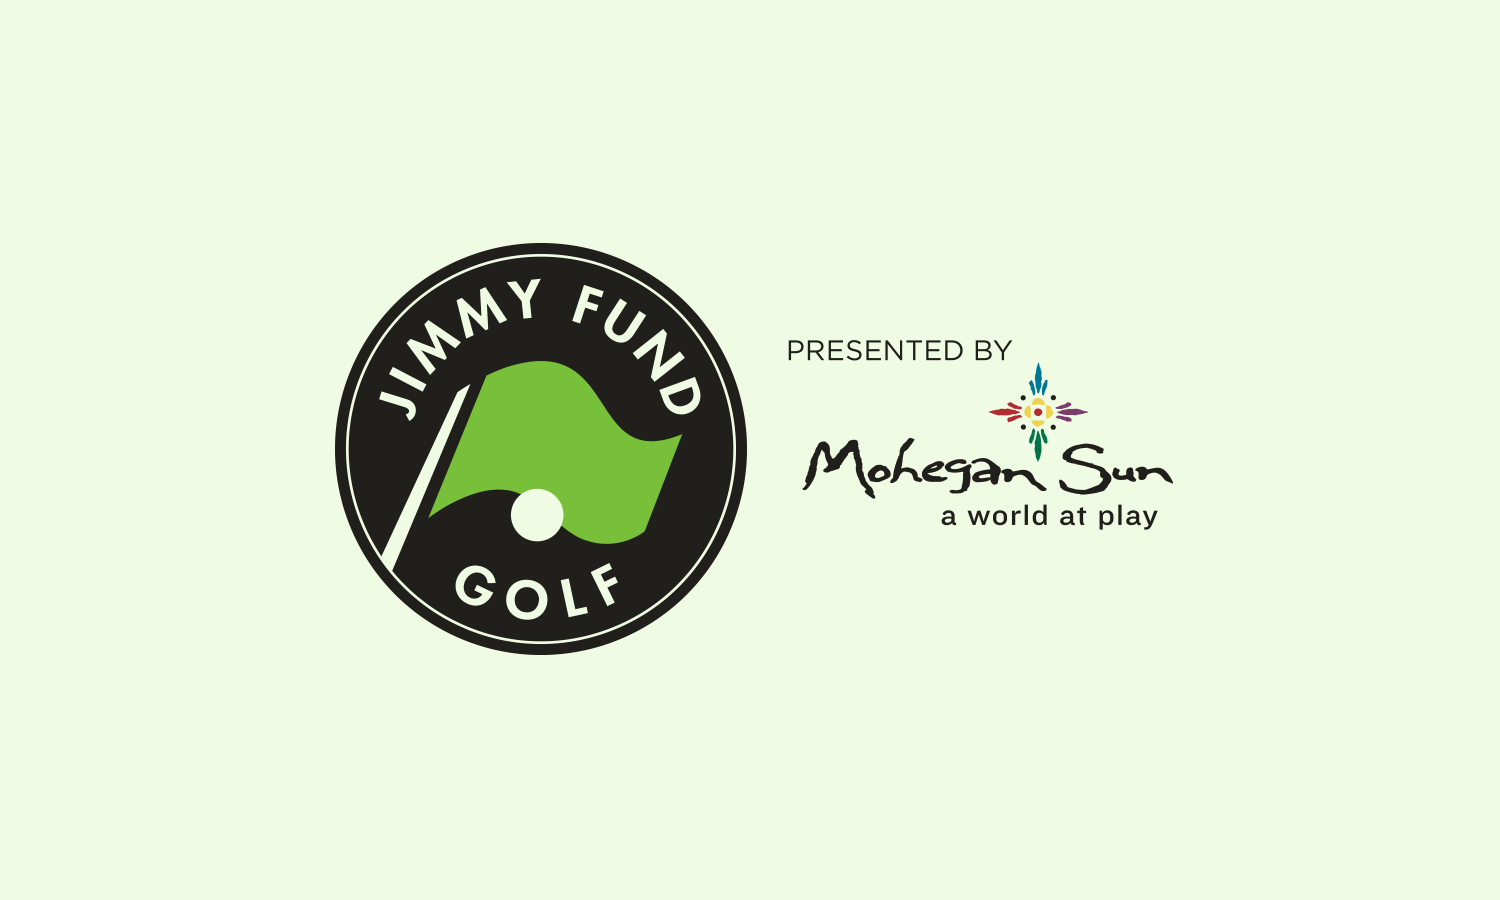 Jimmy Fund Golf community stays the course in 2020